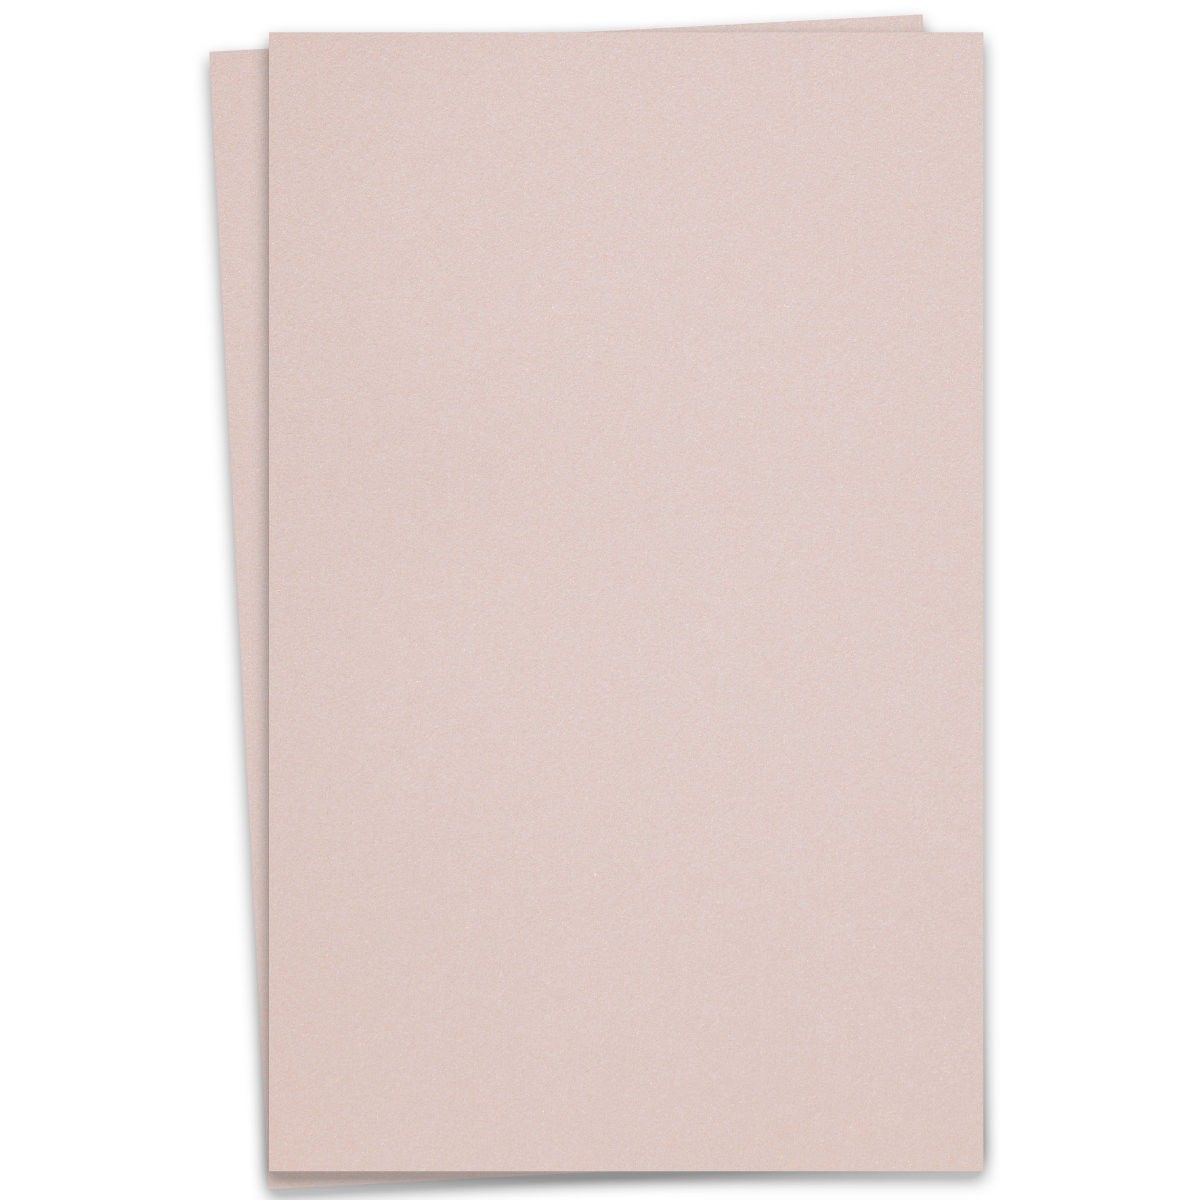 Curious Metallic Rose Gold 12 X 18 Cardstock Paper 300 Gsm 111lb